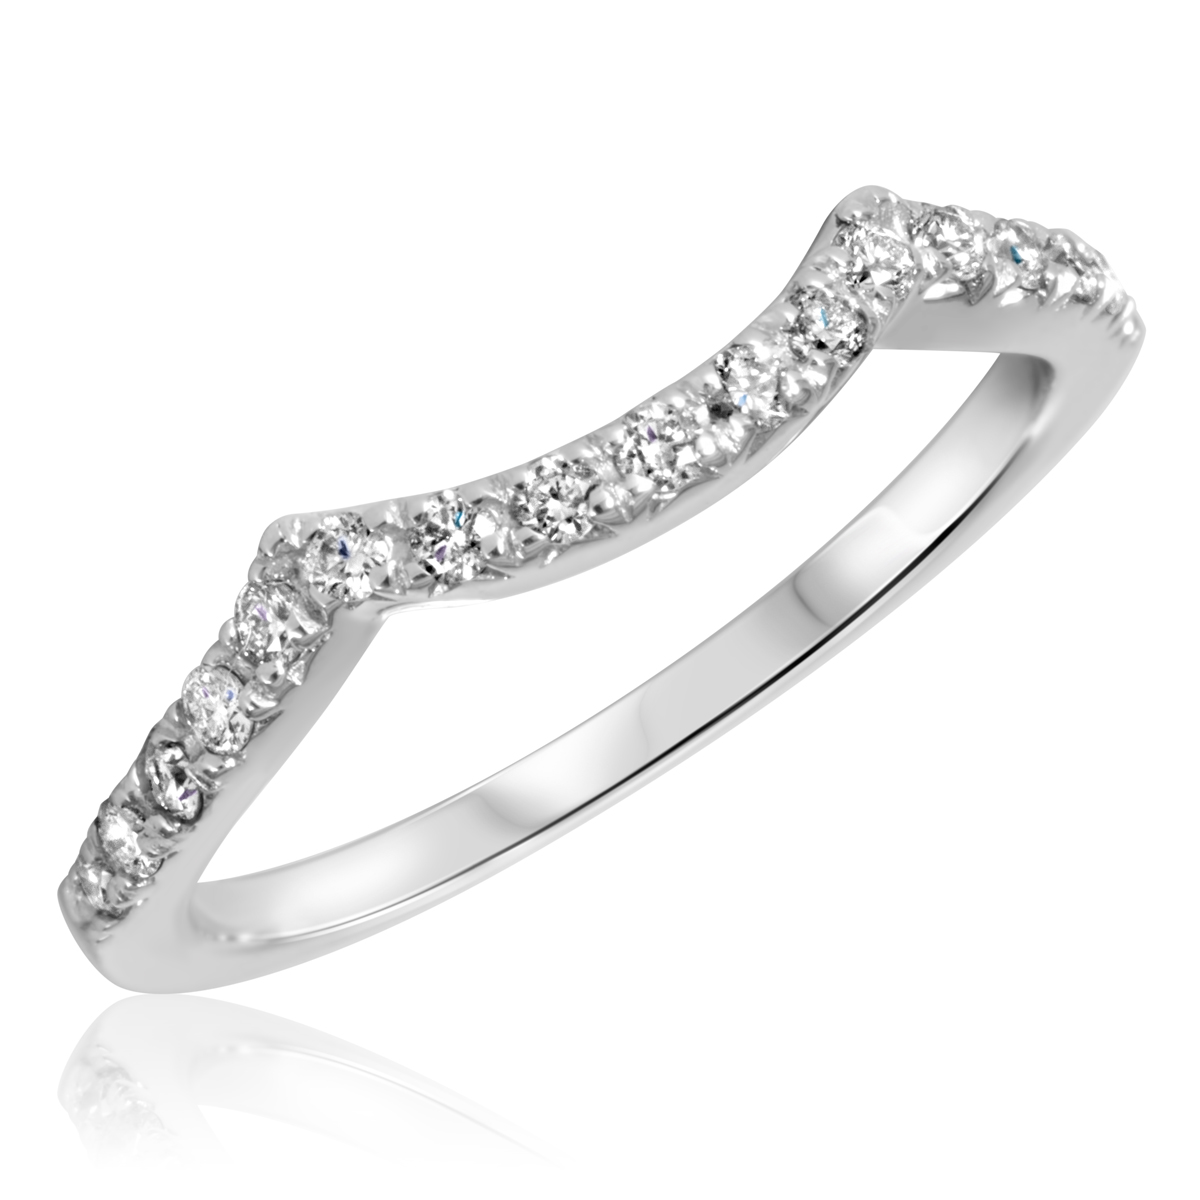 1/3 Carat T.W. Round Cut Diamond Ladies Wedding Band 14K White Gold- Size 8